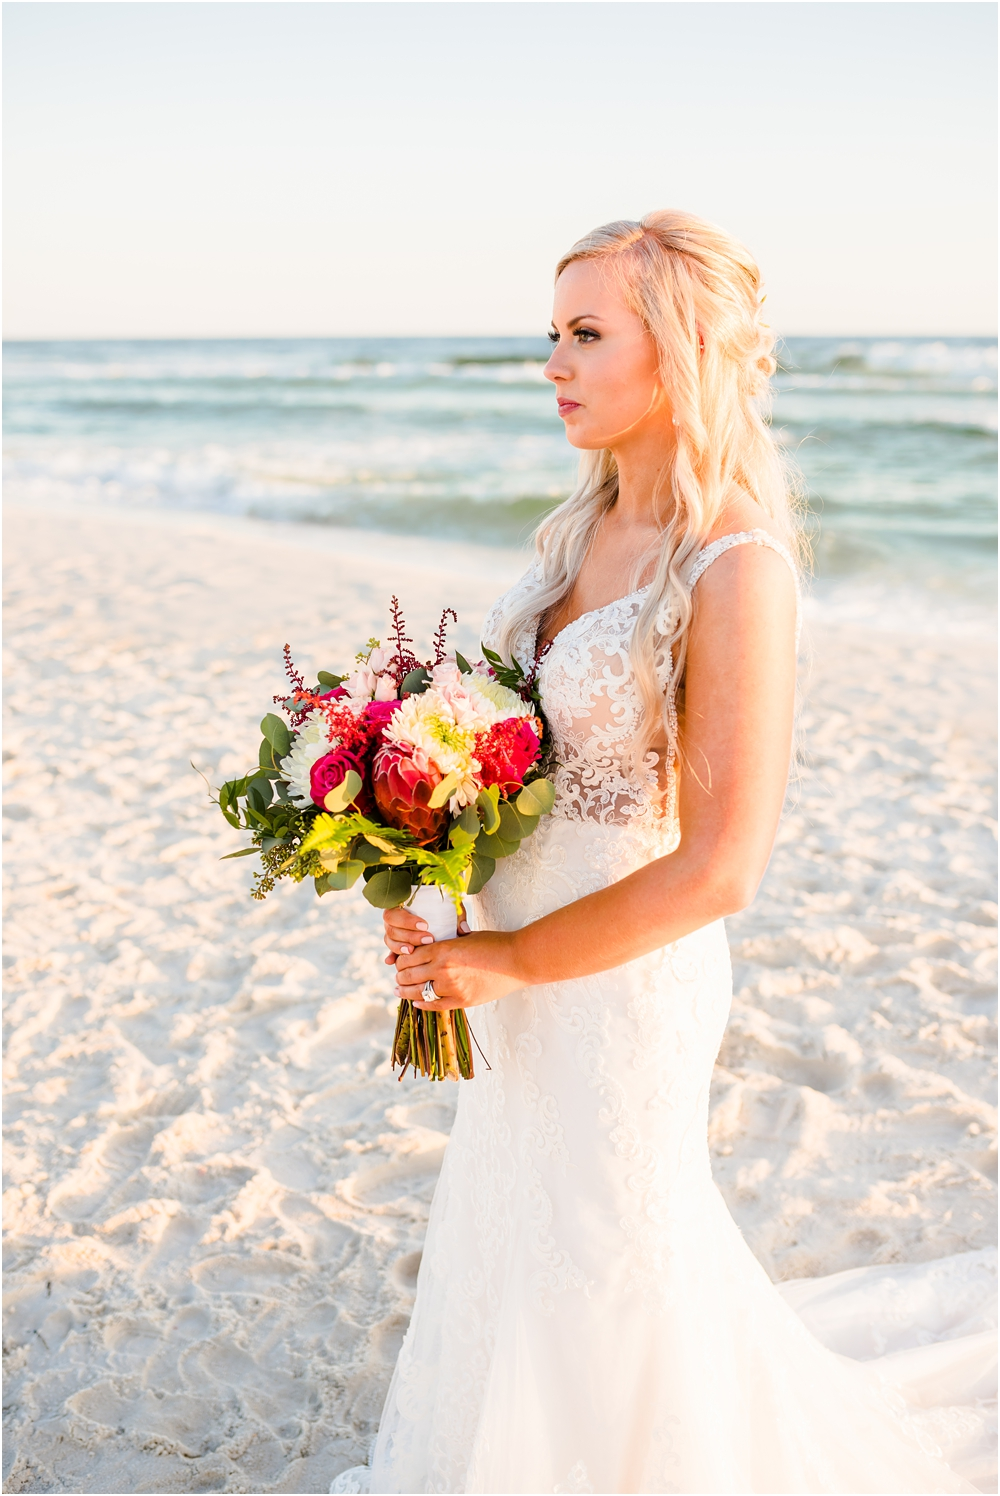 mcglothlin-wedding-kiersten-stevenson-photography-30a-panama-city-beach-dothan-tallahassee-(99-of-145).jpg